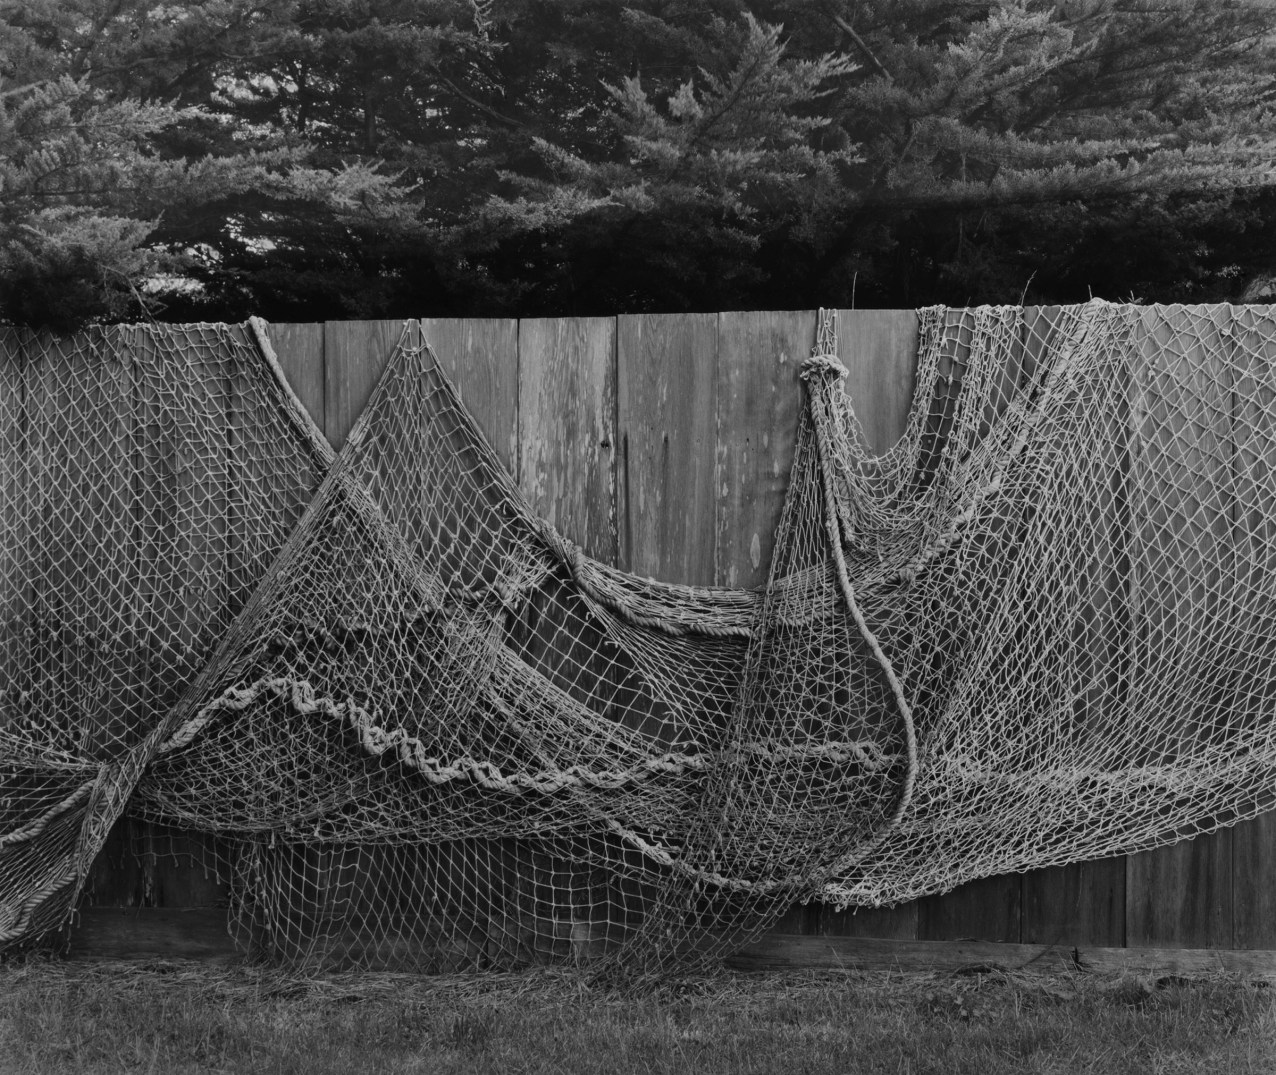 Fish Net over Fence, by Edna Bullock © Bullock Family Photography LLC